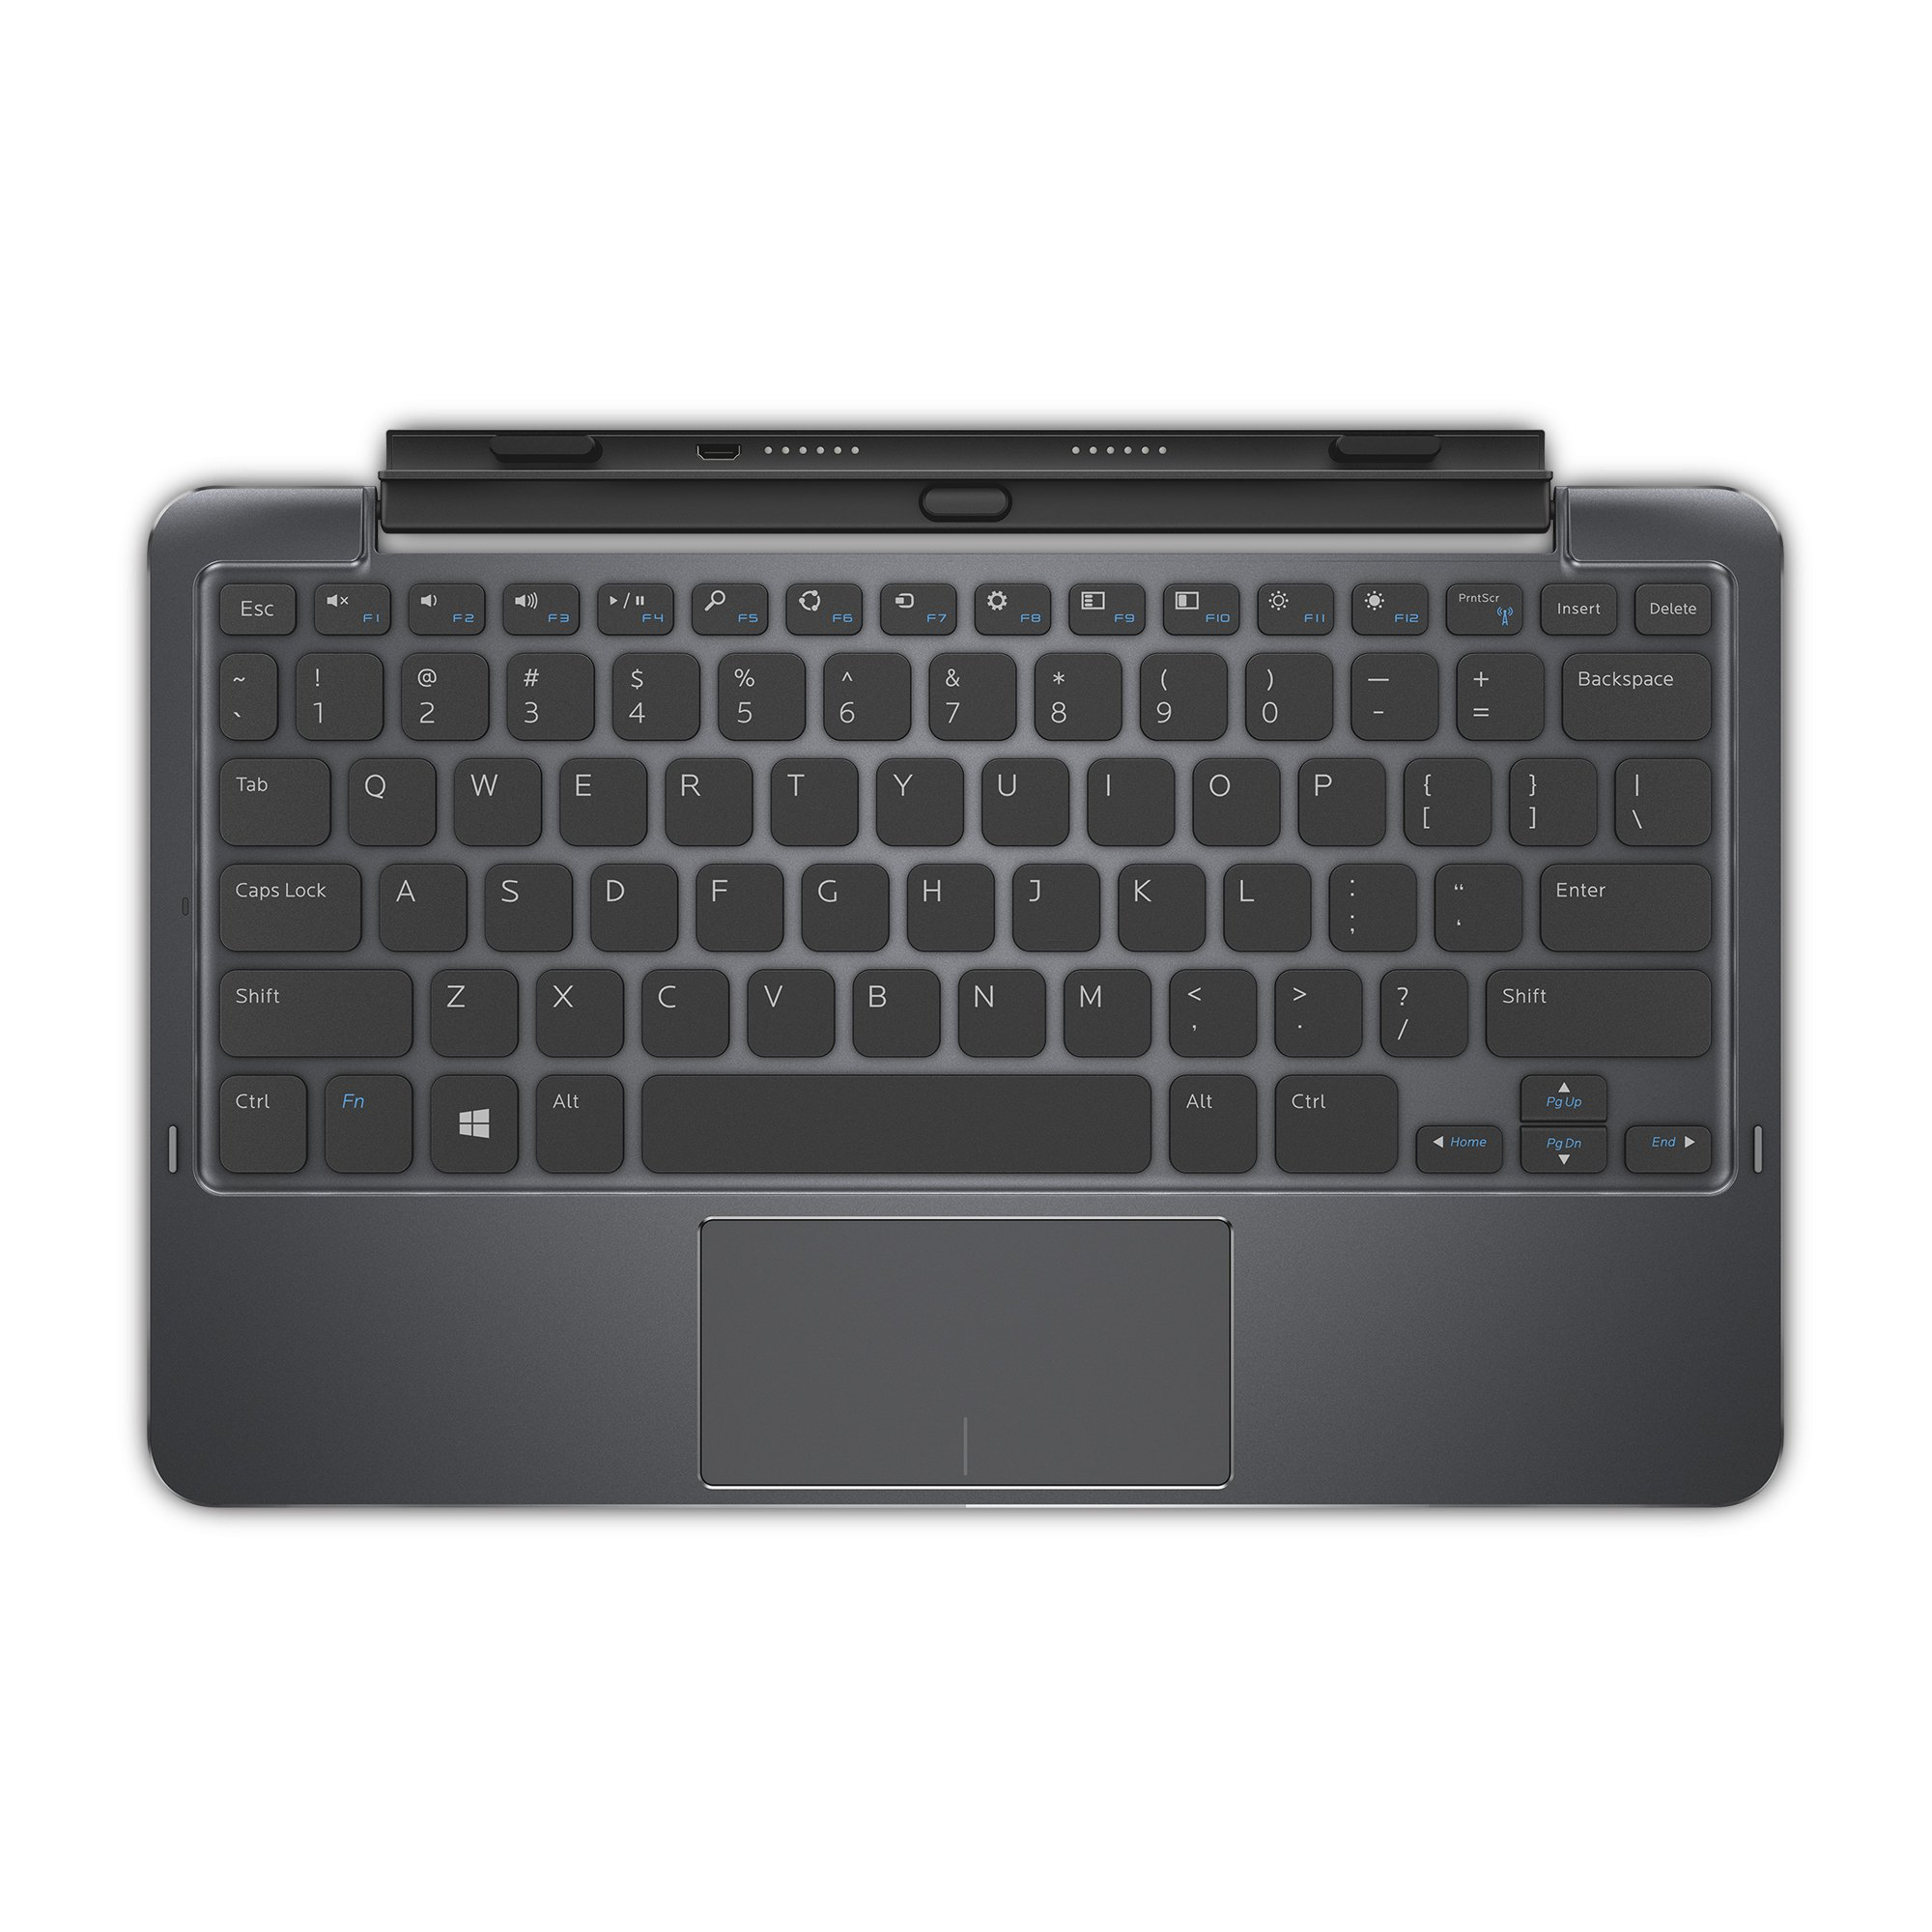 Dell Tablet Keyboard - Mobile for Venue 11 Pro (5J36C) by Dell